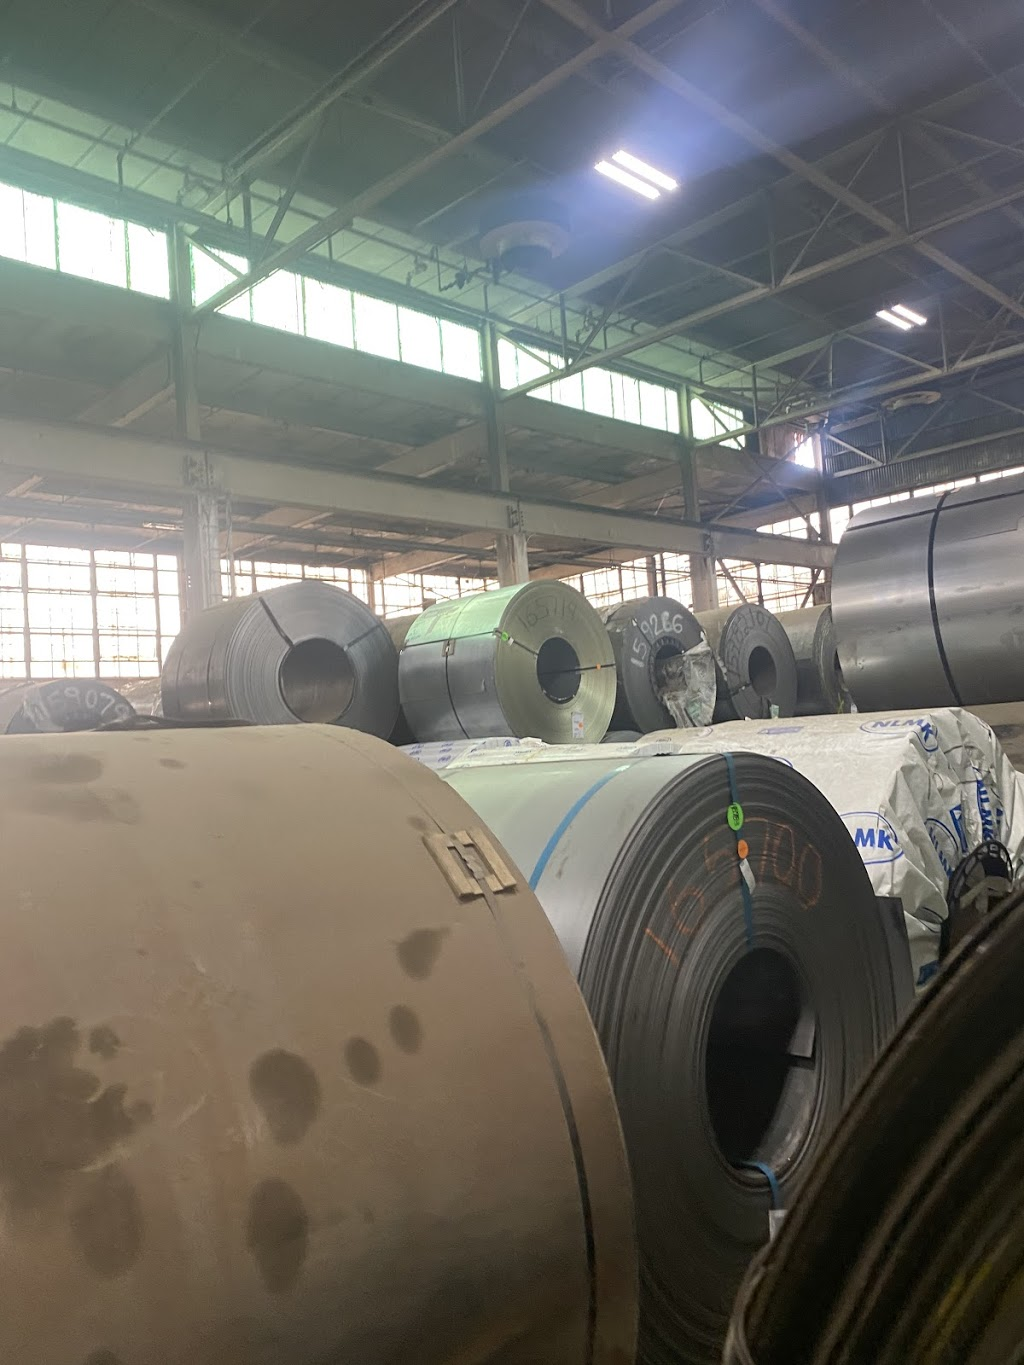 Charter Steel Trading Co Inc - point of interest  | Photo 9 of 10 | Address: 4401 Roosevelt Rd, Chicago, IL 60624, USA | Phone: (773) 522-3100